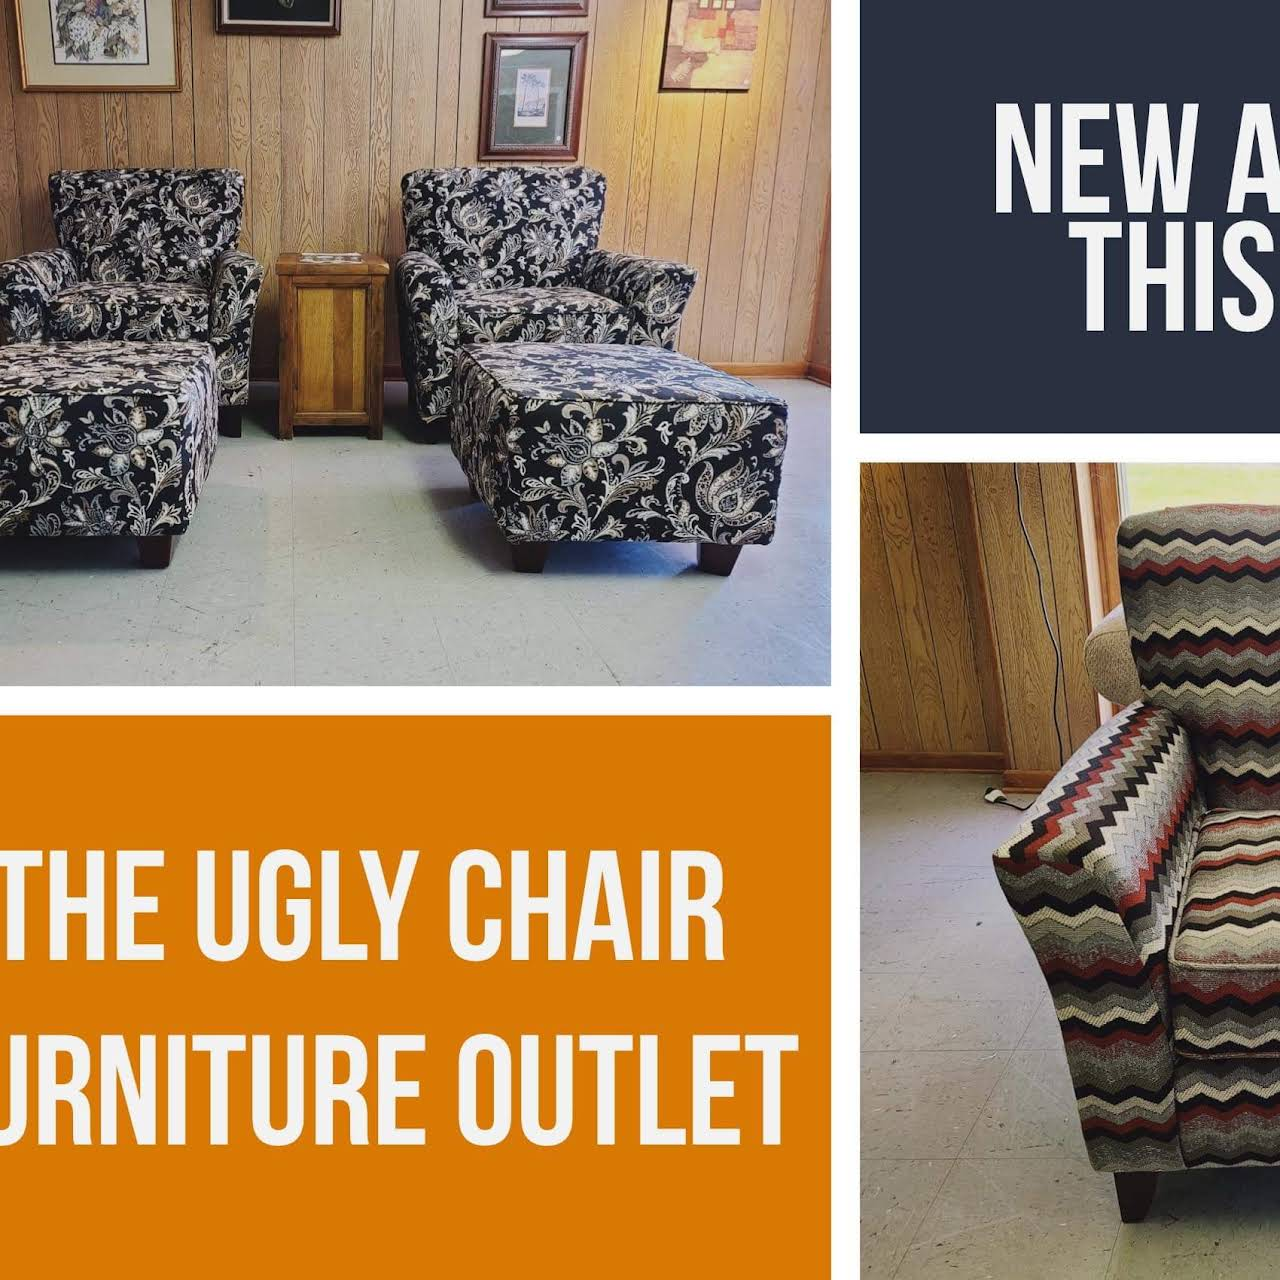 Ugly Chair Furniture Outlet - Furniture Store in Tupelo